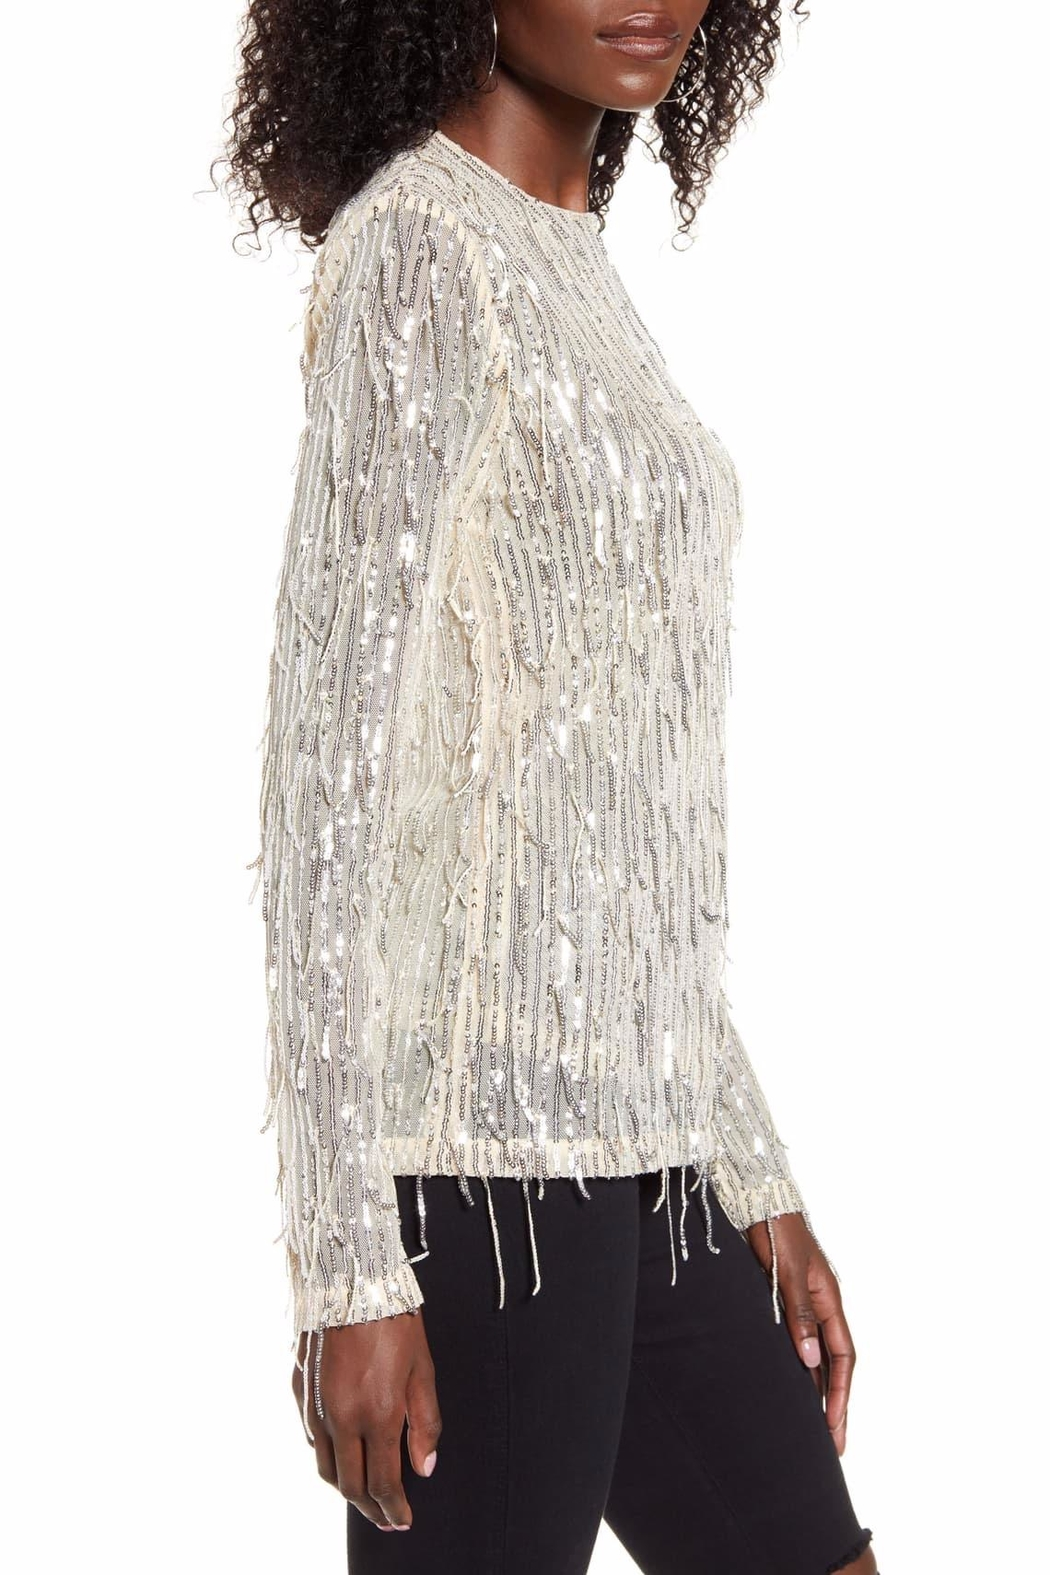 Endless Rose Stella Sequin-Fringe Top - Side Cropped Image